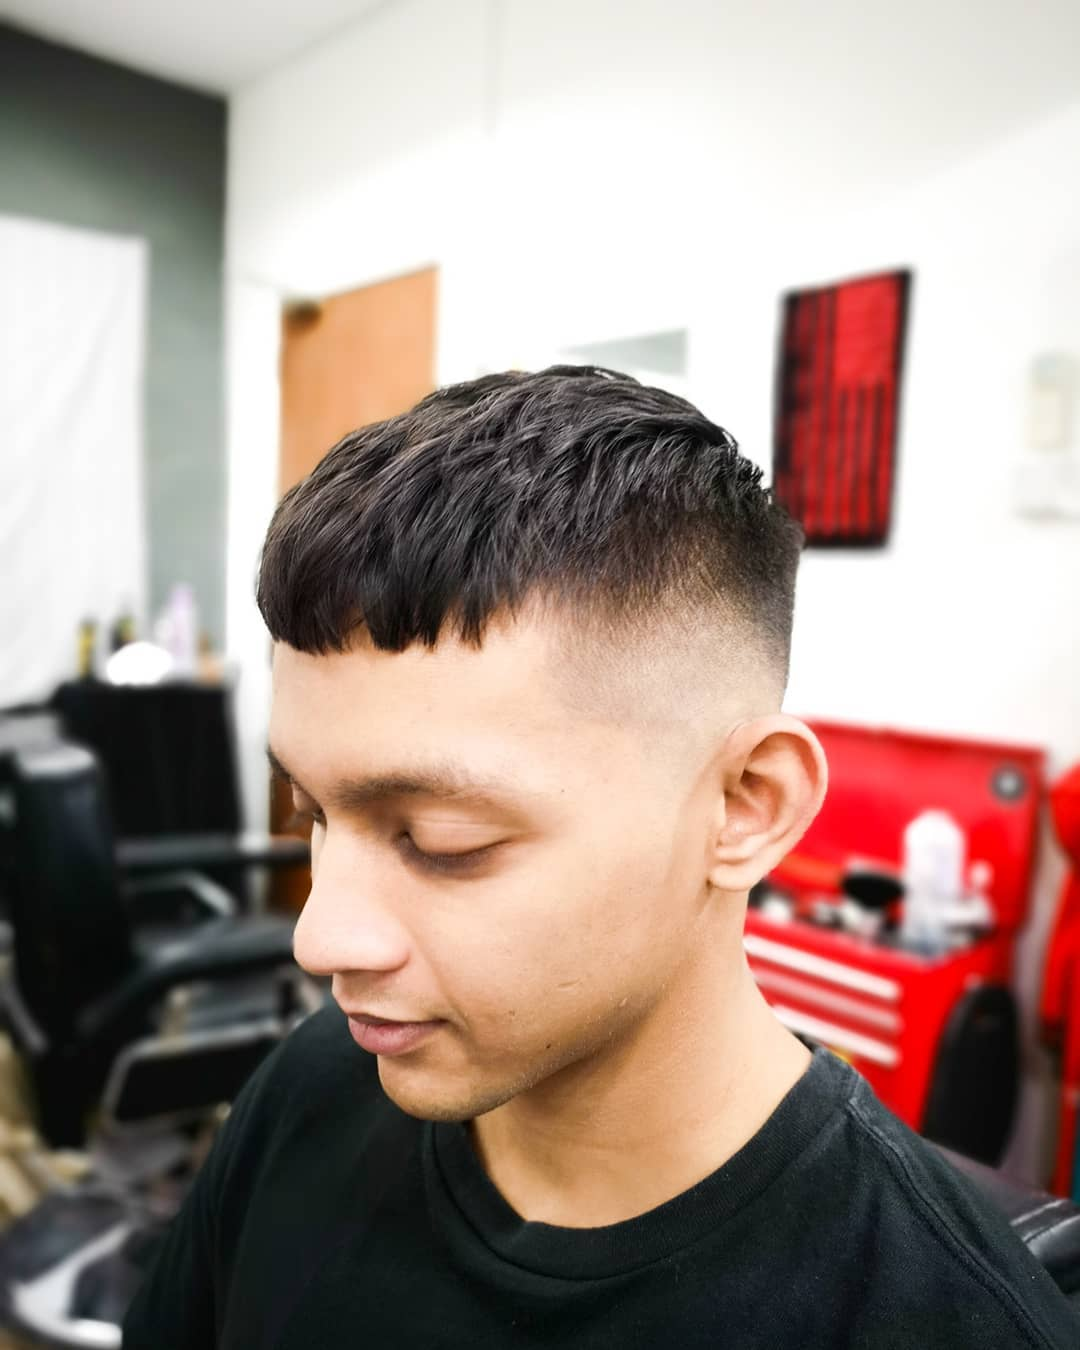 10 Undercut Hairstyles For Guys In 2020 With New Variations So You Don T Look Basic